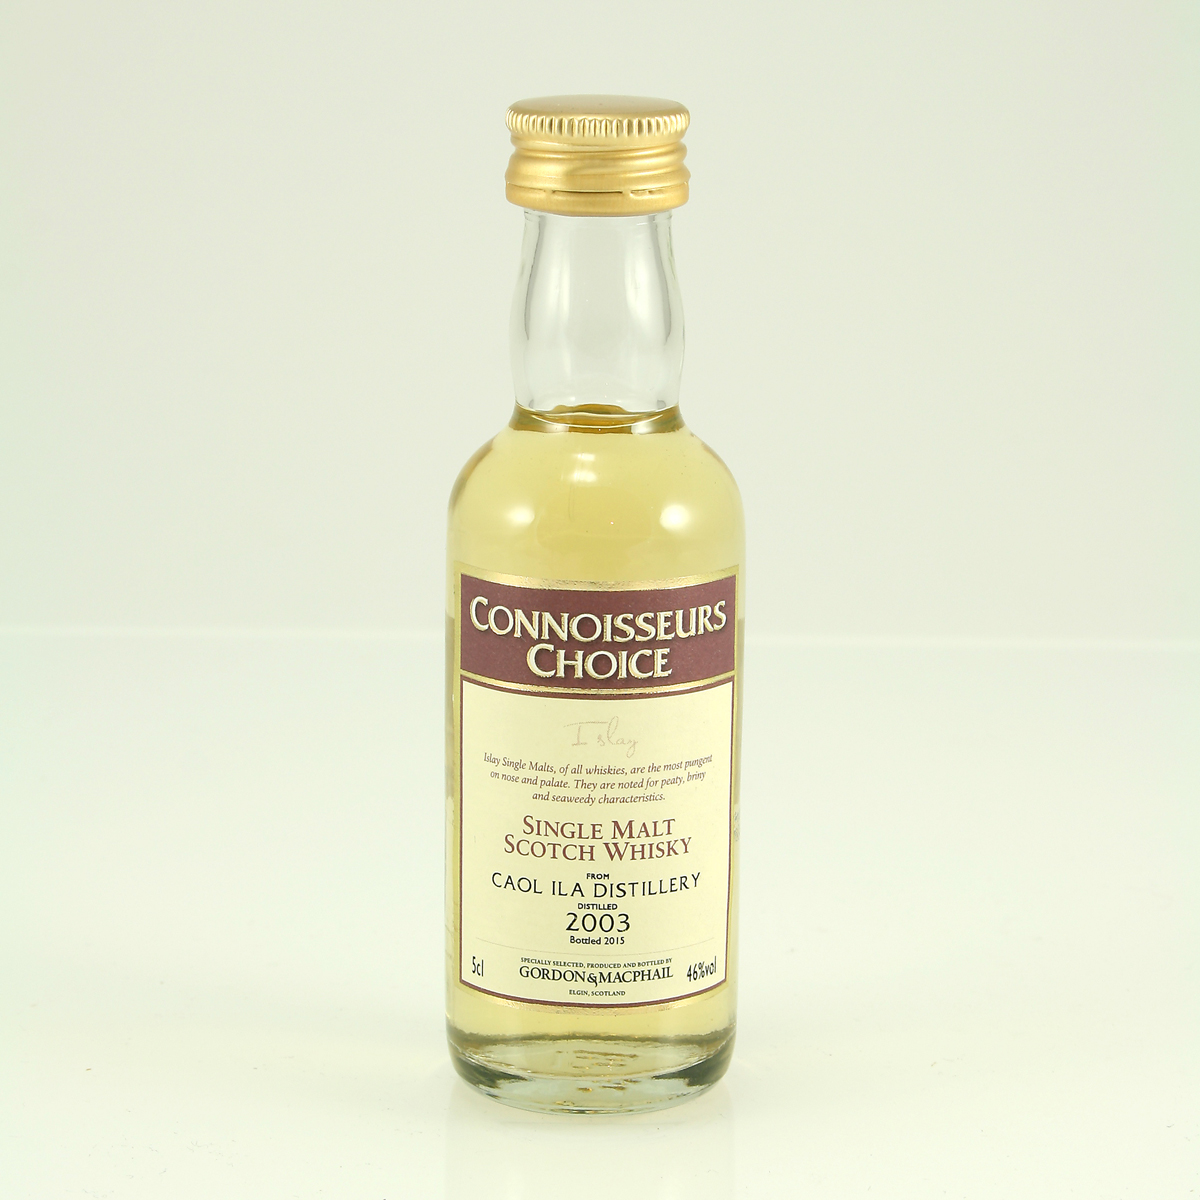 CAOL ILA 2004 Connoisseurs Choice 46% 5cl